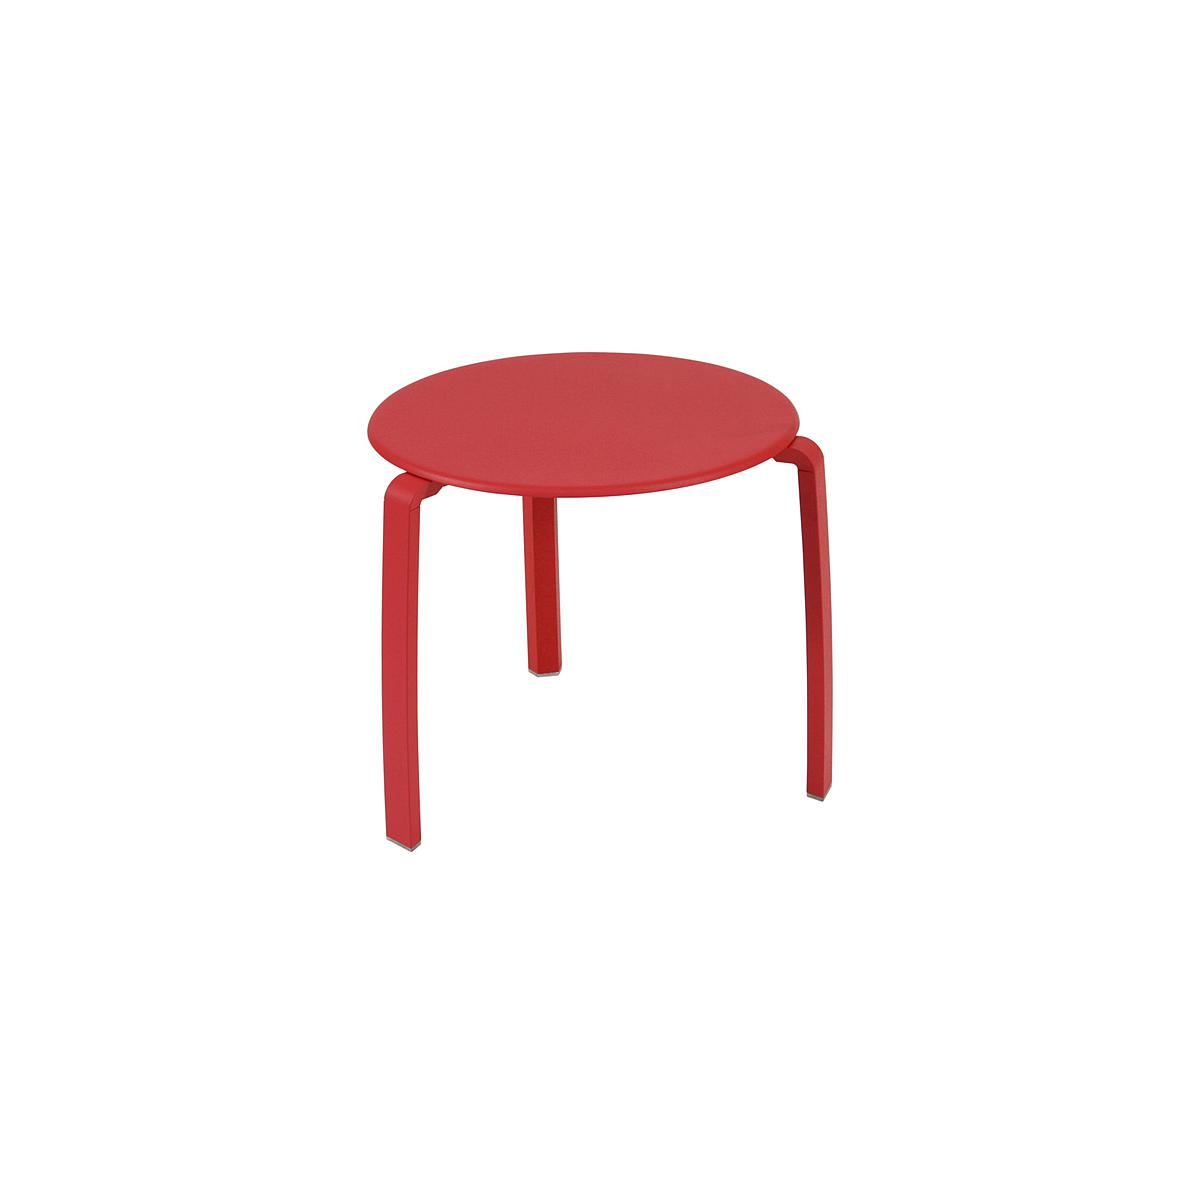 ALIZE by Fermob Table basse Rouge coquelicot